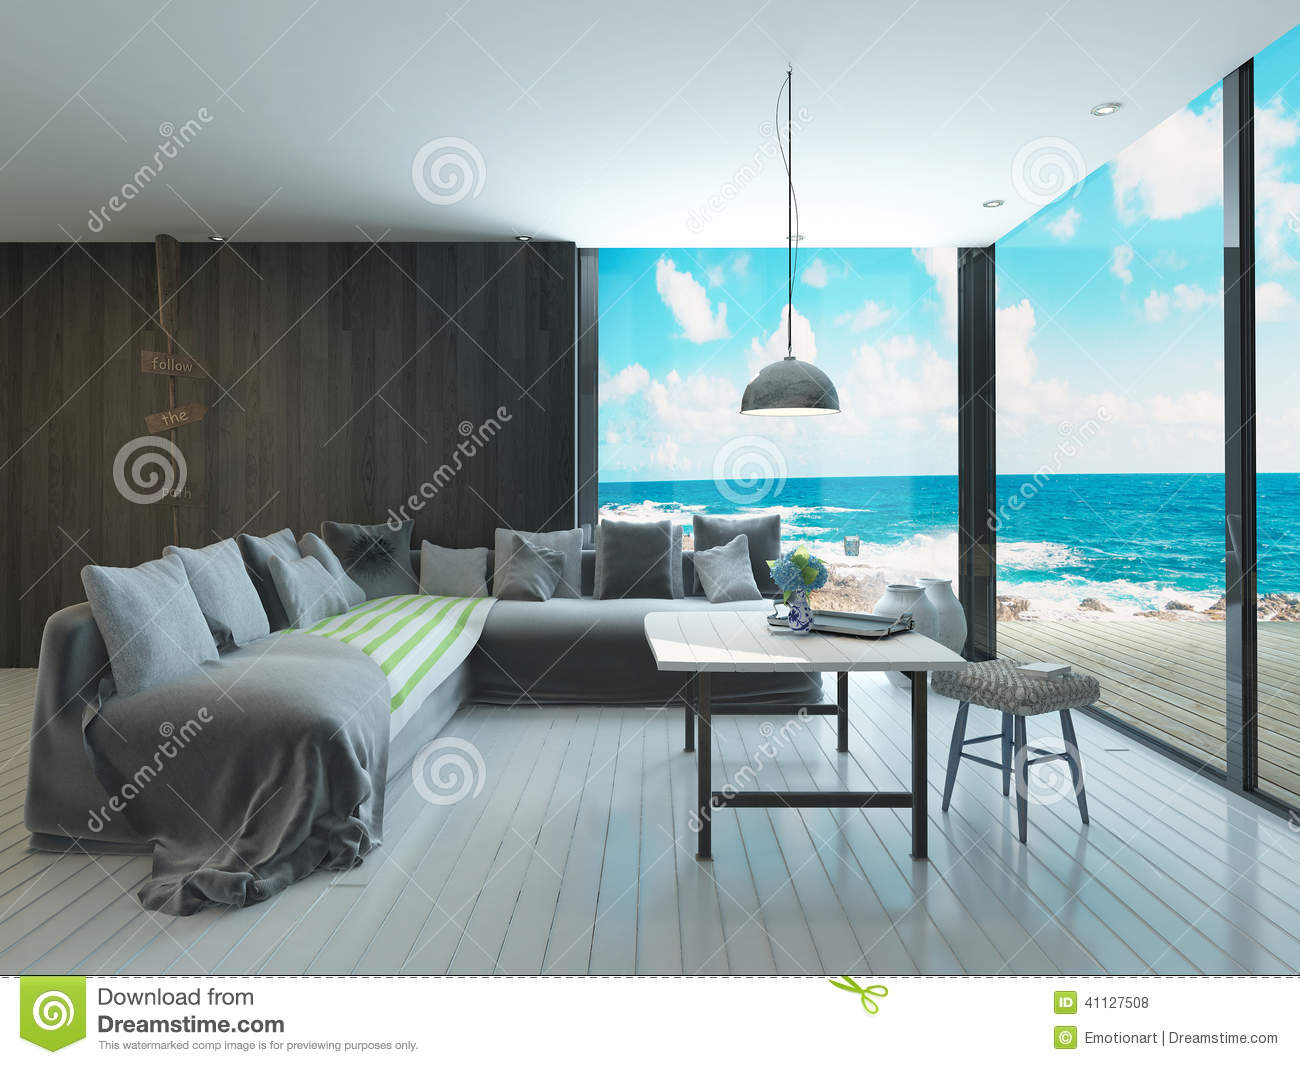 maritime style living room interior with cozy couch and sea view stock illustration image. Black Bedroom Furniture Sets. Home Design Ideas